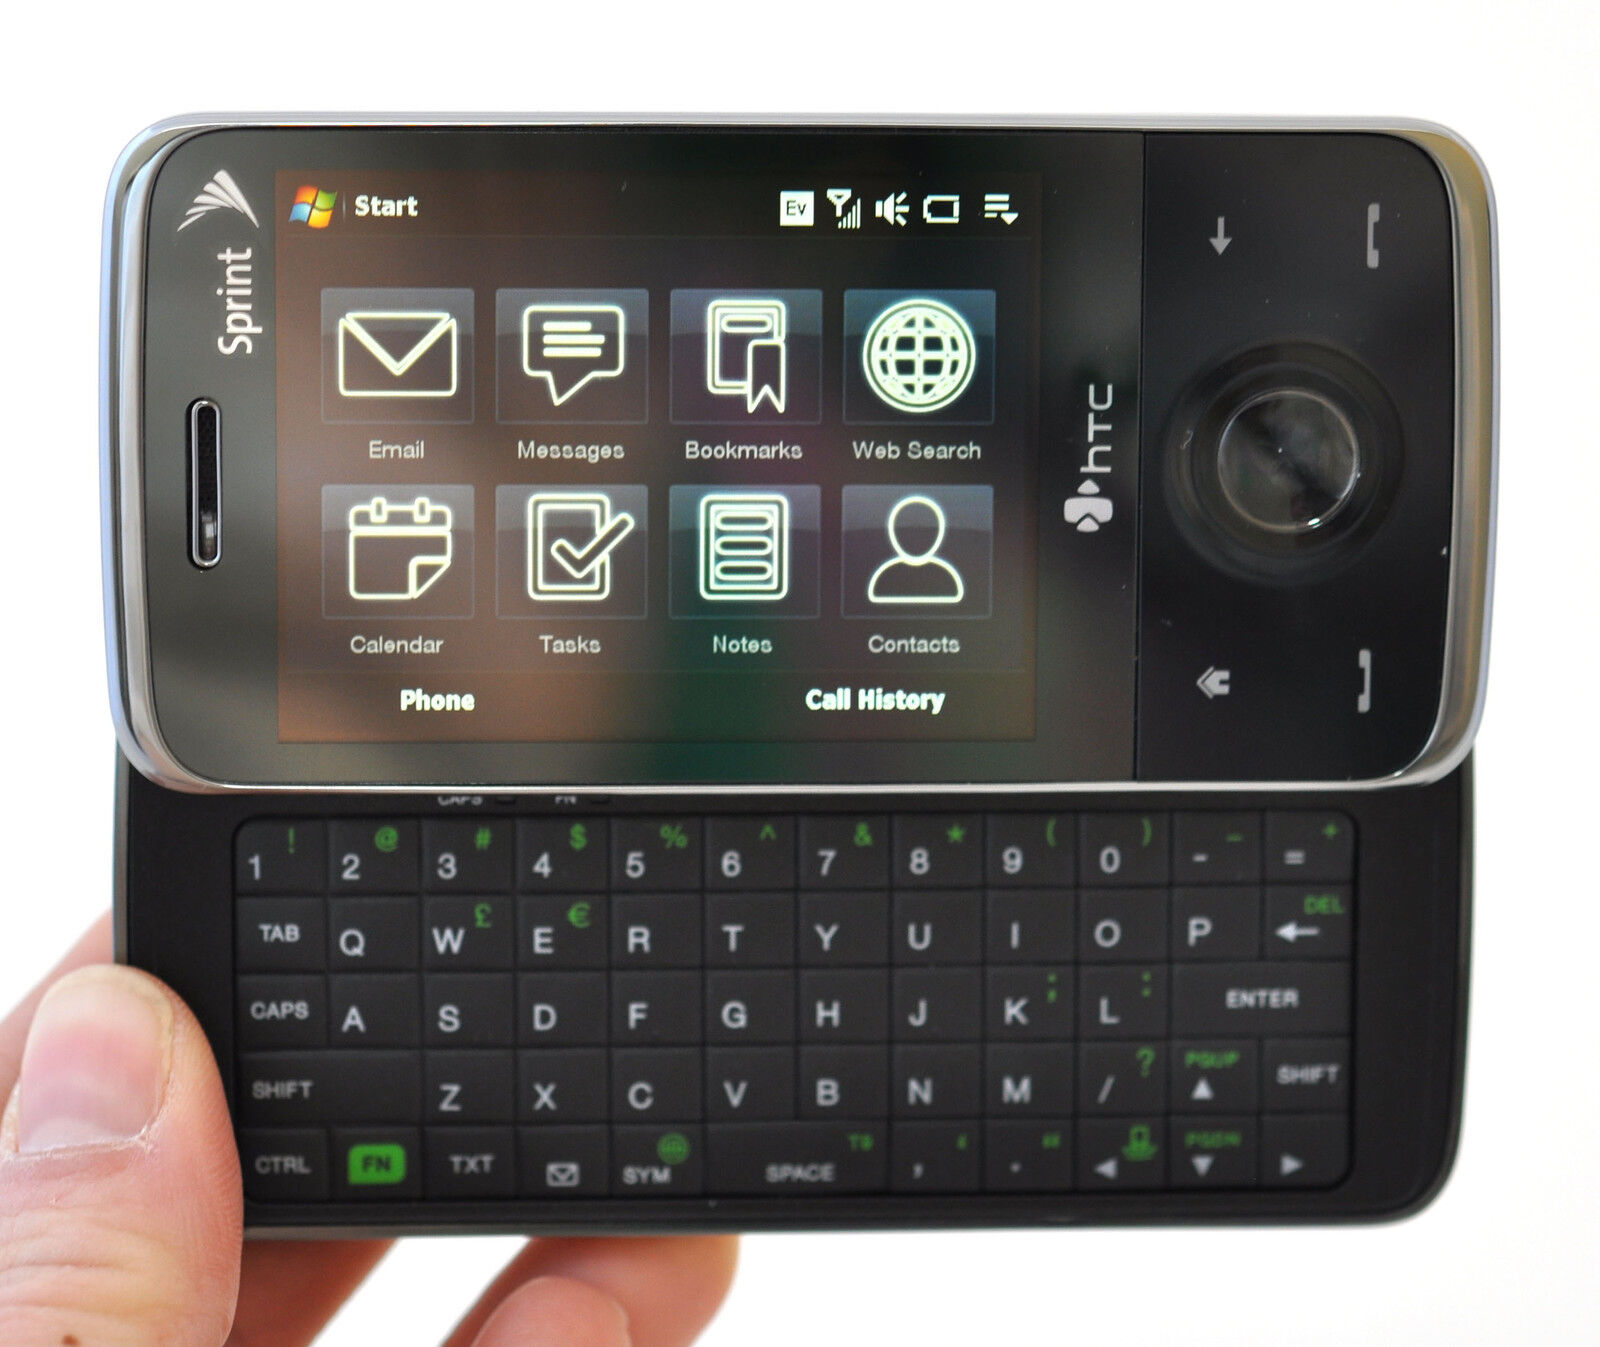 htc touch guide book browse manual guides u2022 rh trufflefries co Sprint HTC Touch Diamond Sprint HTC Touch Manual